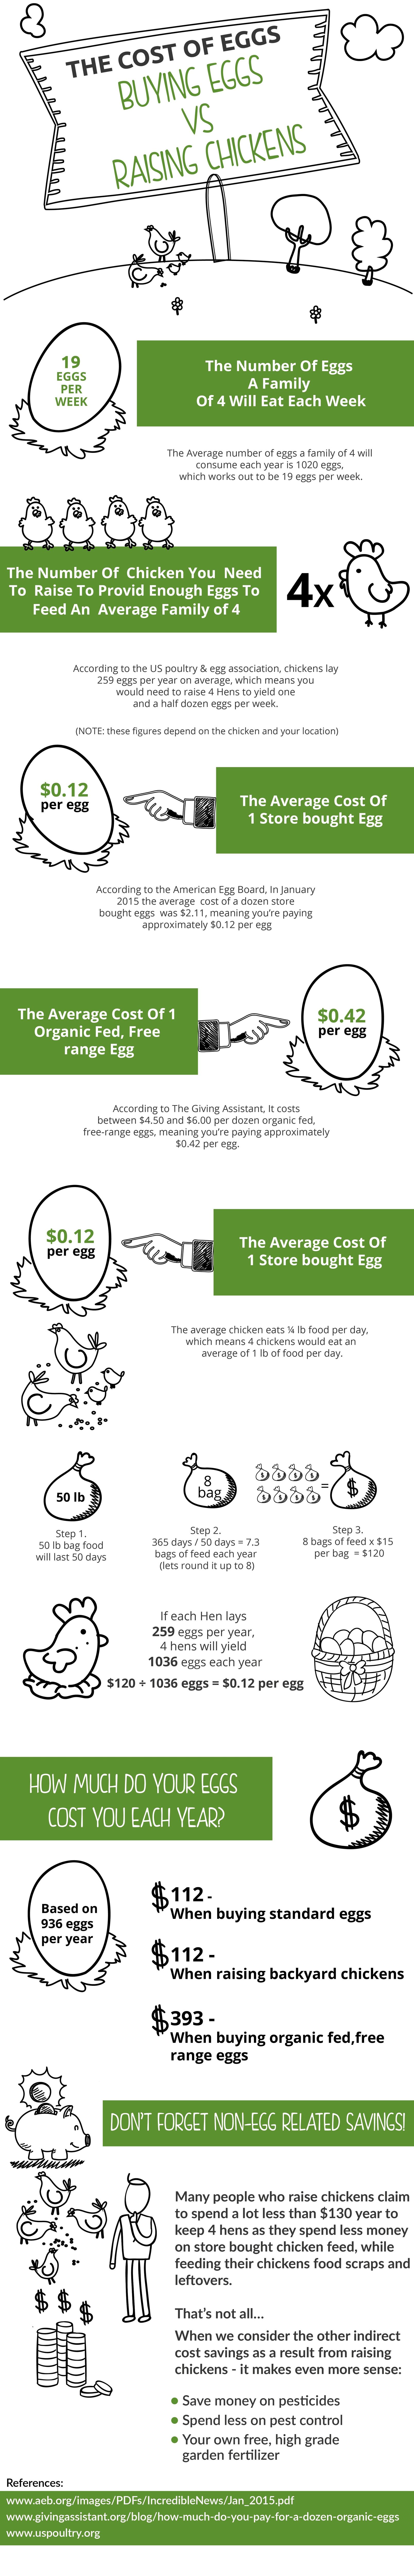 cost of eggs infographic